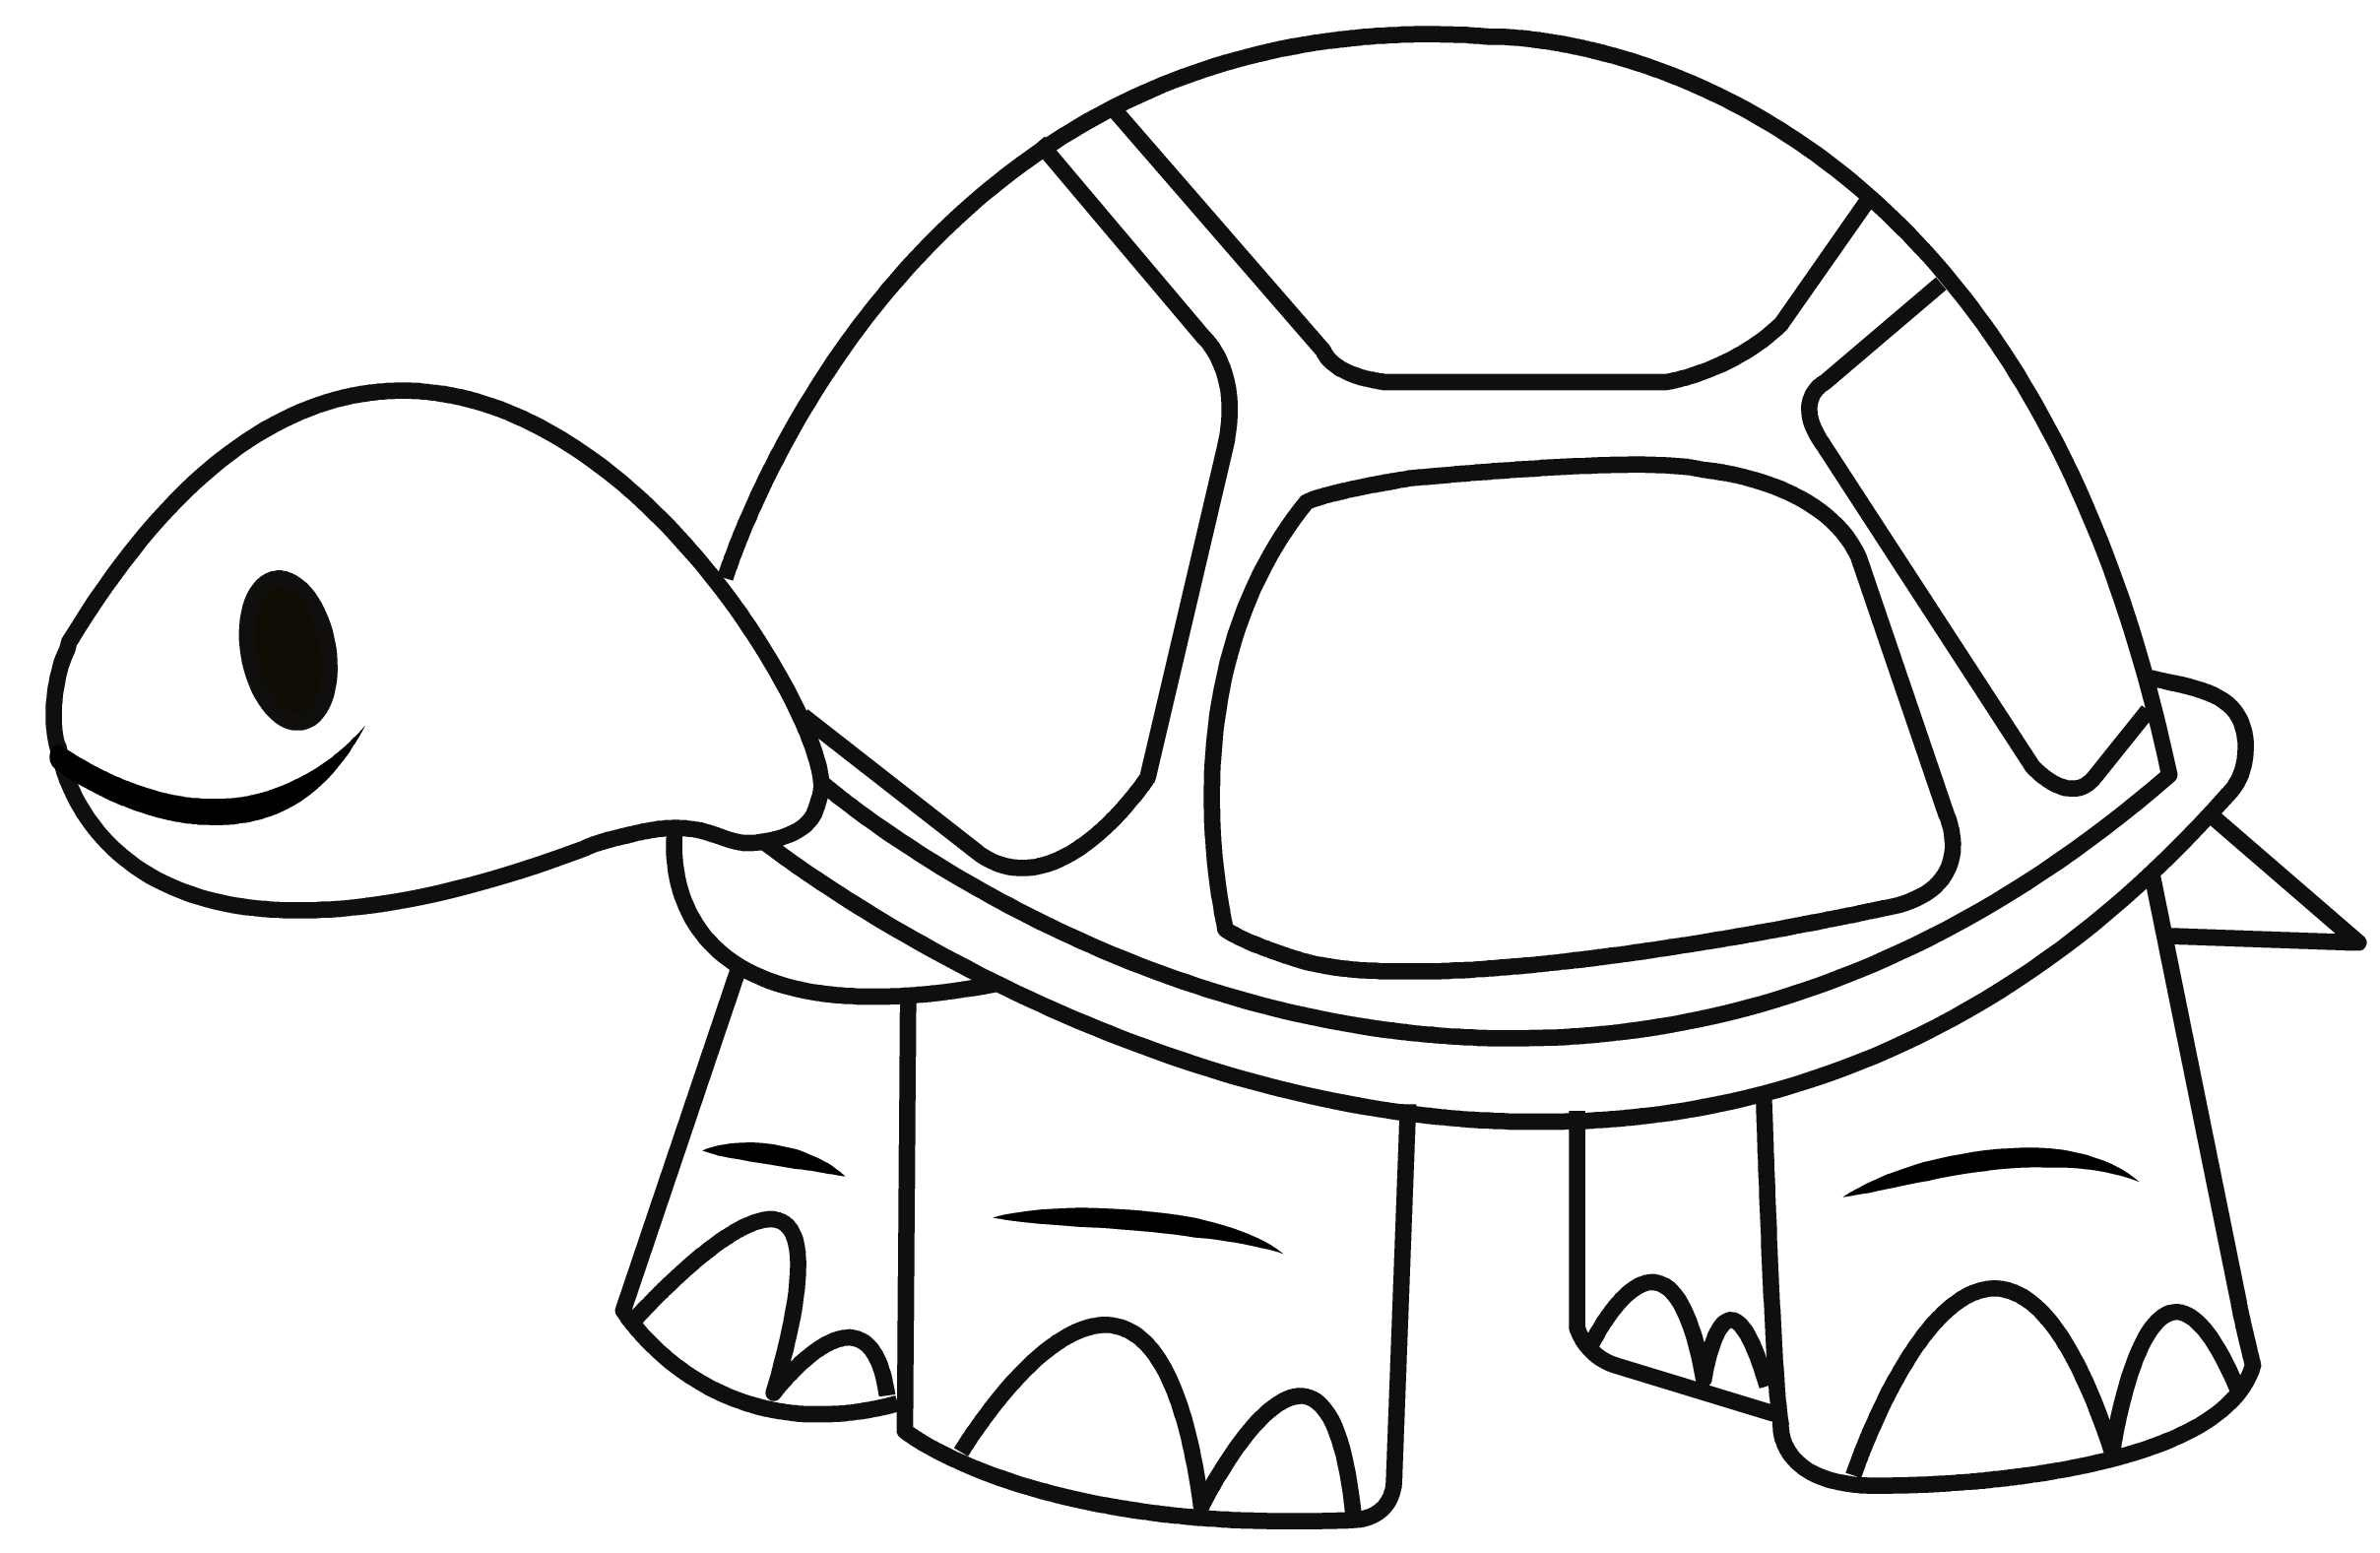 2417x1577 How To Draw A Tortoise